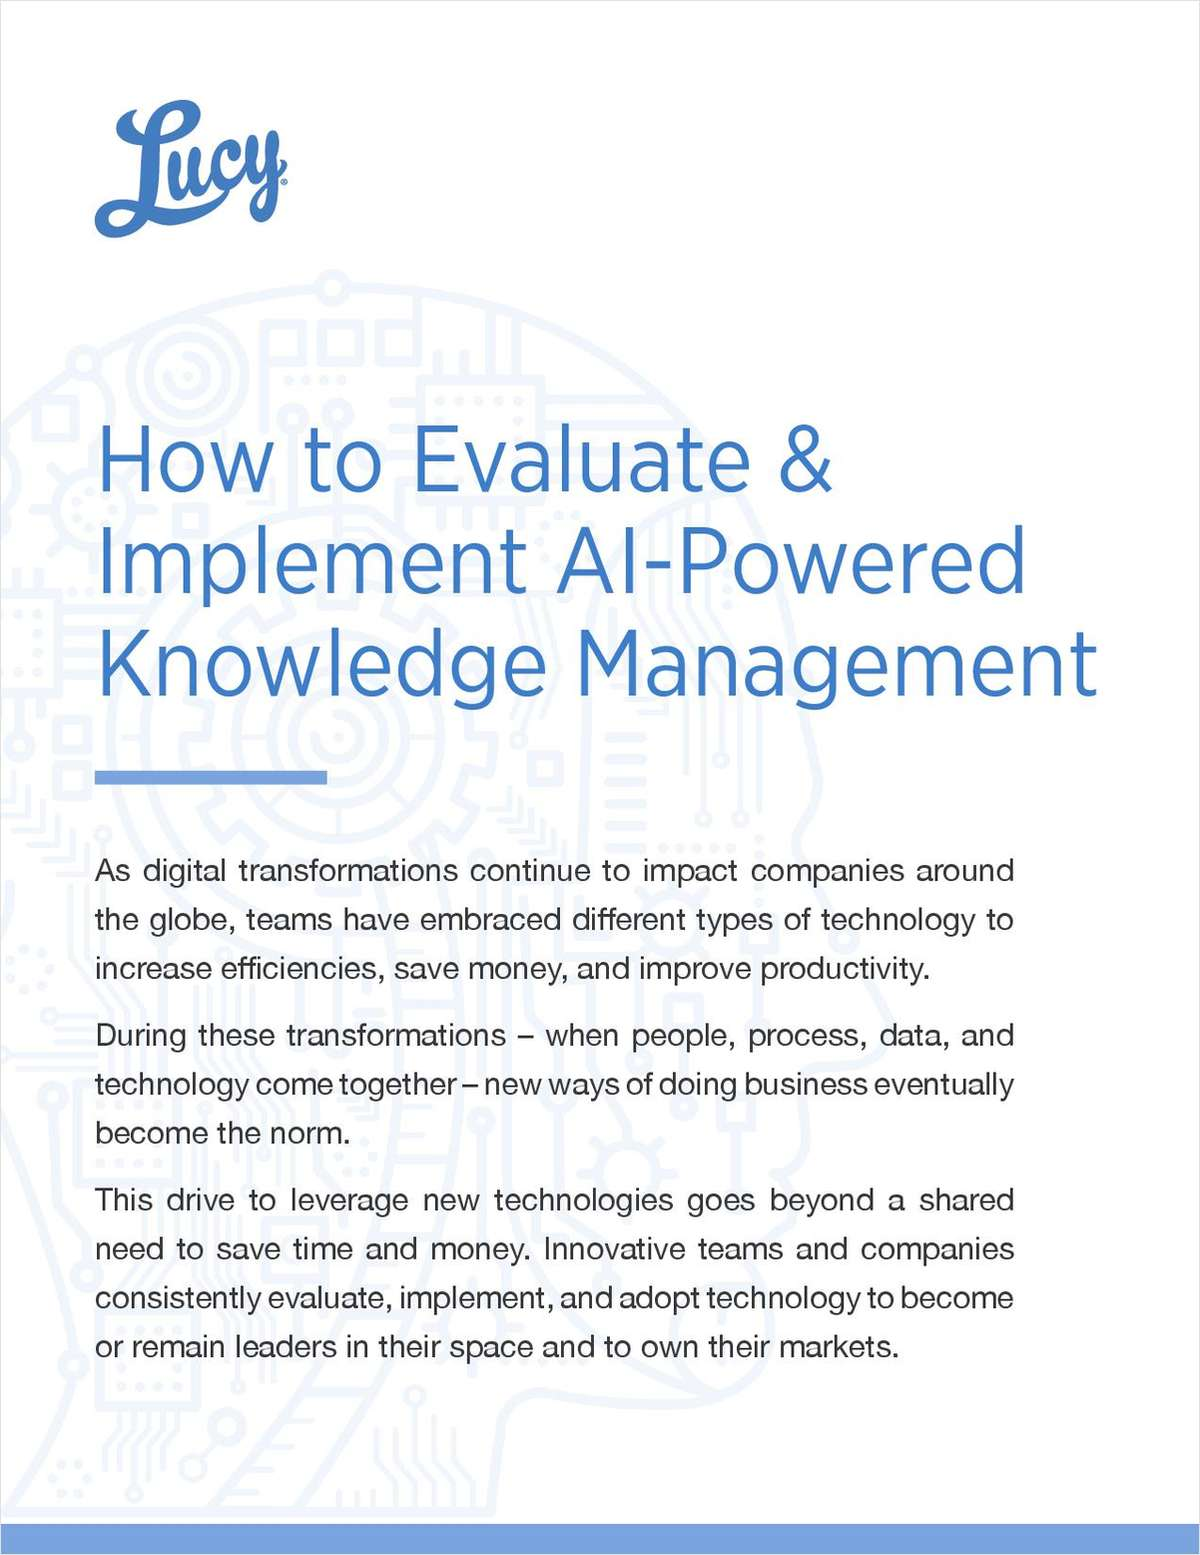 Your Path to Smarter Knowledge Management